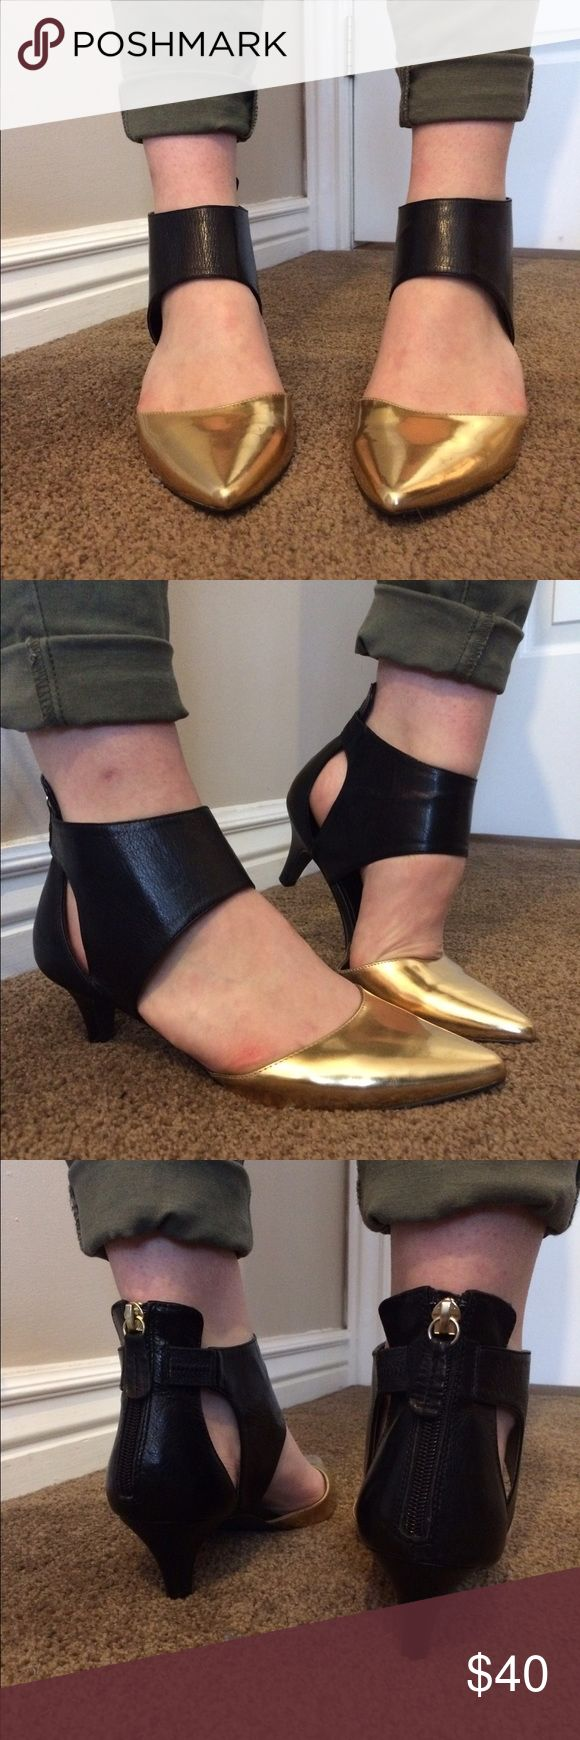 """Kelsi Dagger heels These have been my favorite""""out on the town"""" shoes!  About a 2 in heel so they are fine to walk in!  Gold metallic toe complemented with black.  Zipper back.  Amazing! Kelsi Dagger Shoes Heels"""